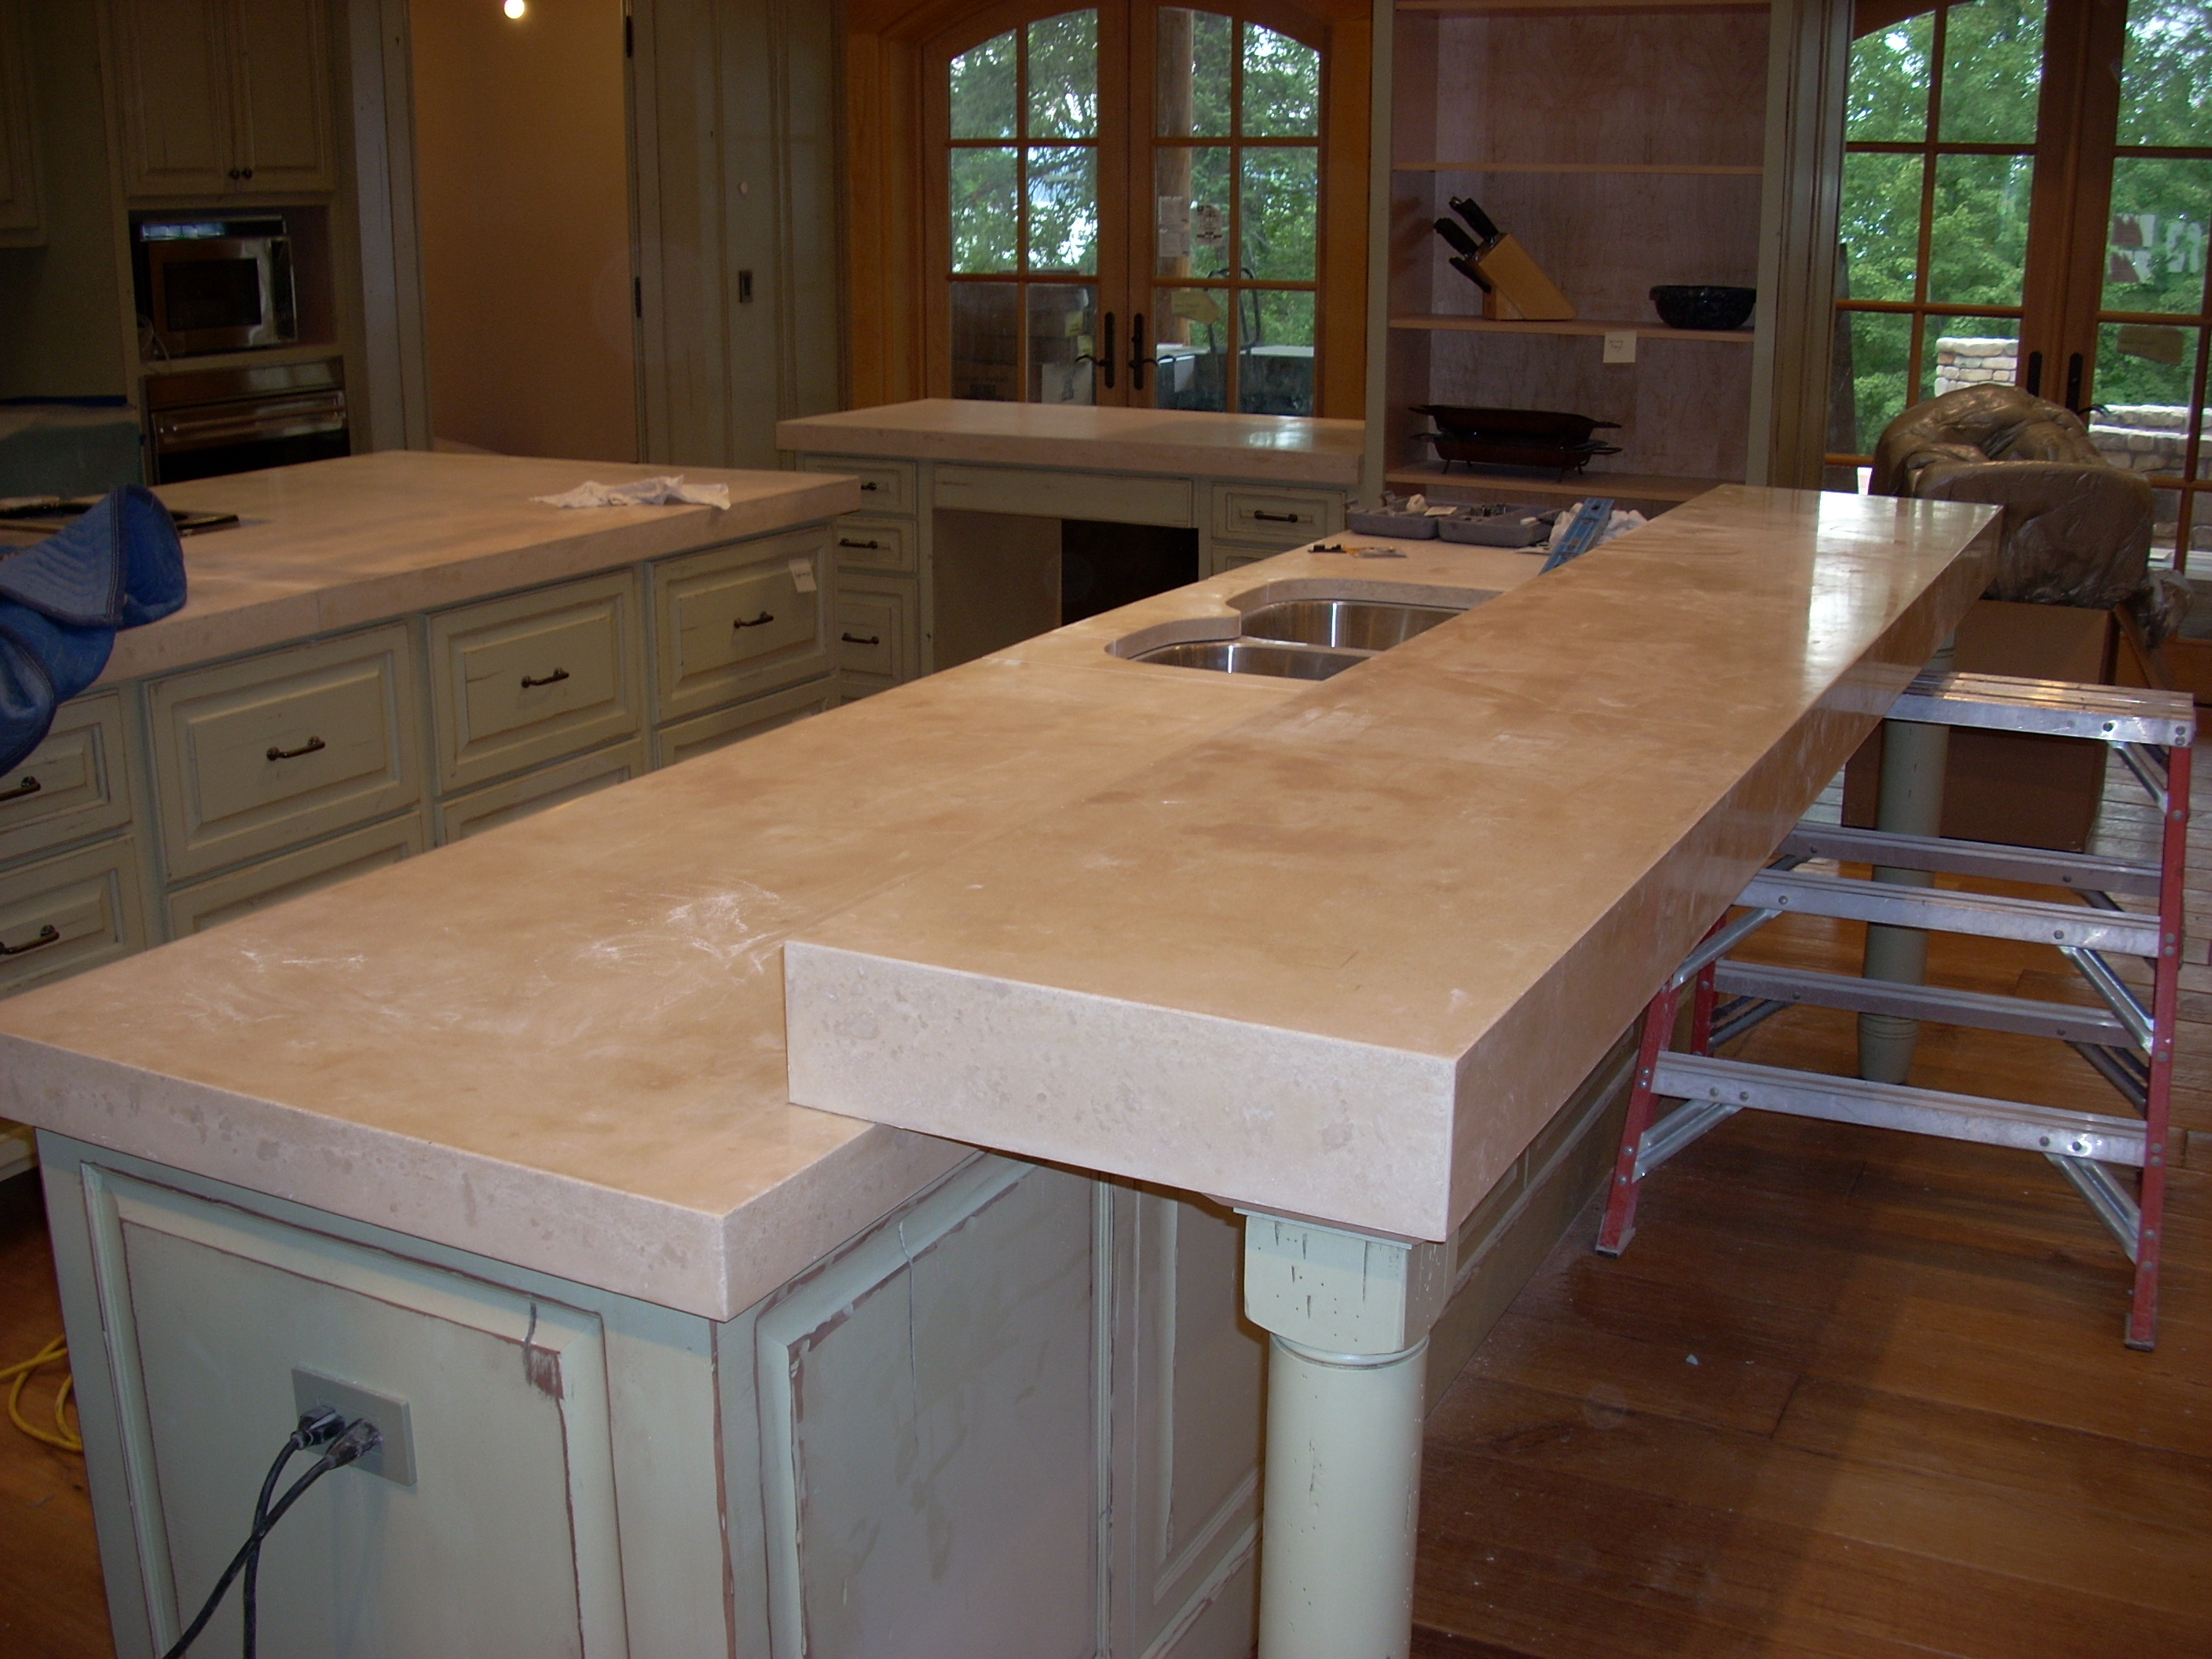 institute shop omega sinks sealer concrete countertop with sealed